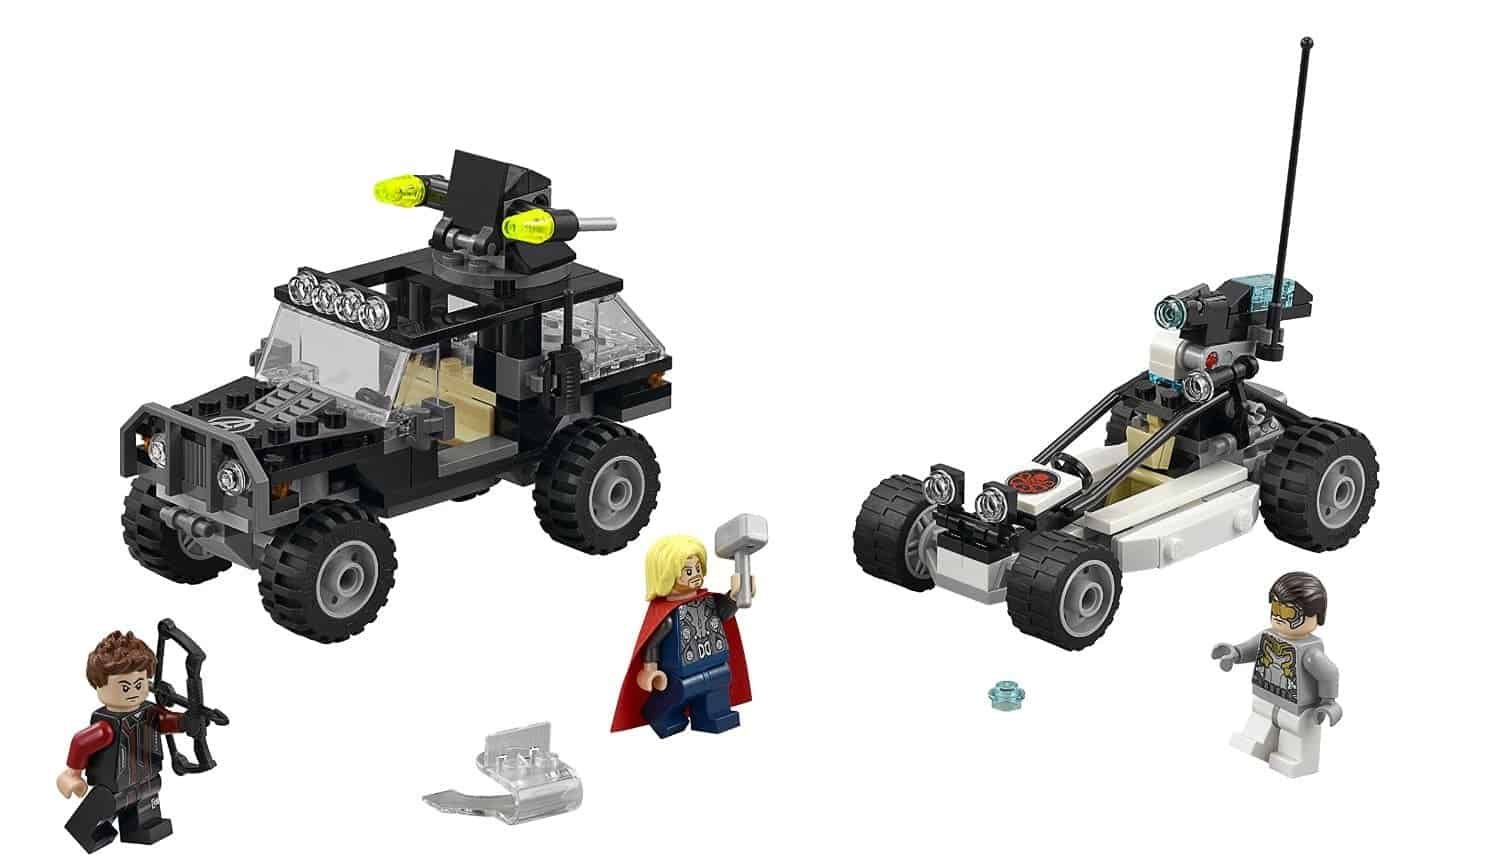 Lego Gift Ideas by Age - Toddler to Twelve Years: Superheros Avengers | www.thepinningmama.com